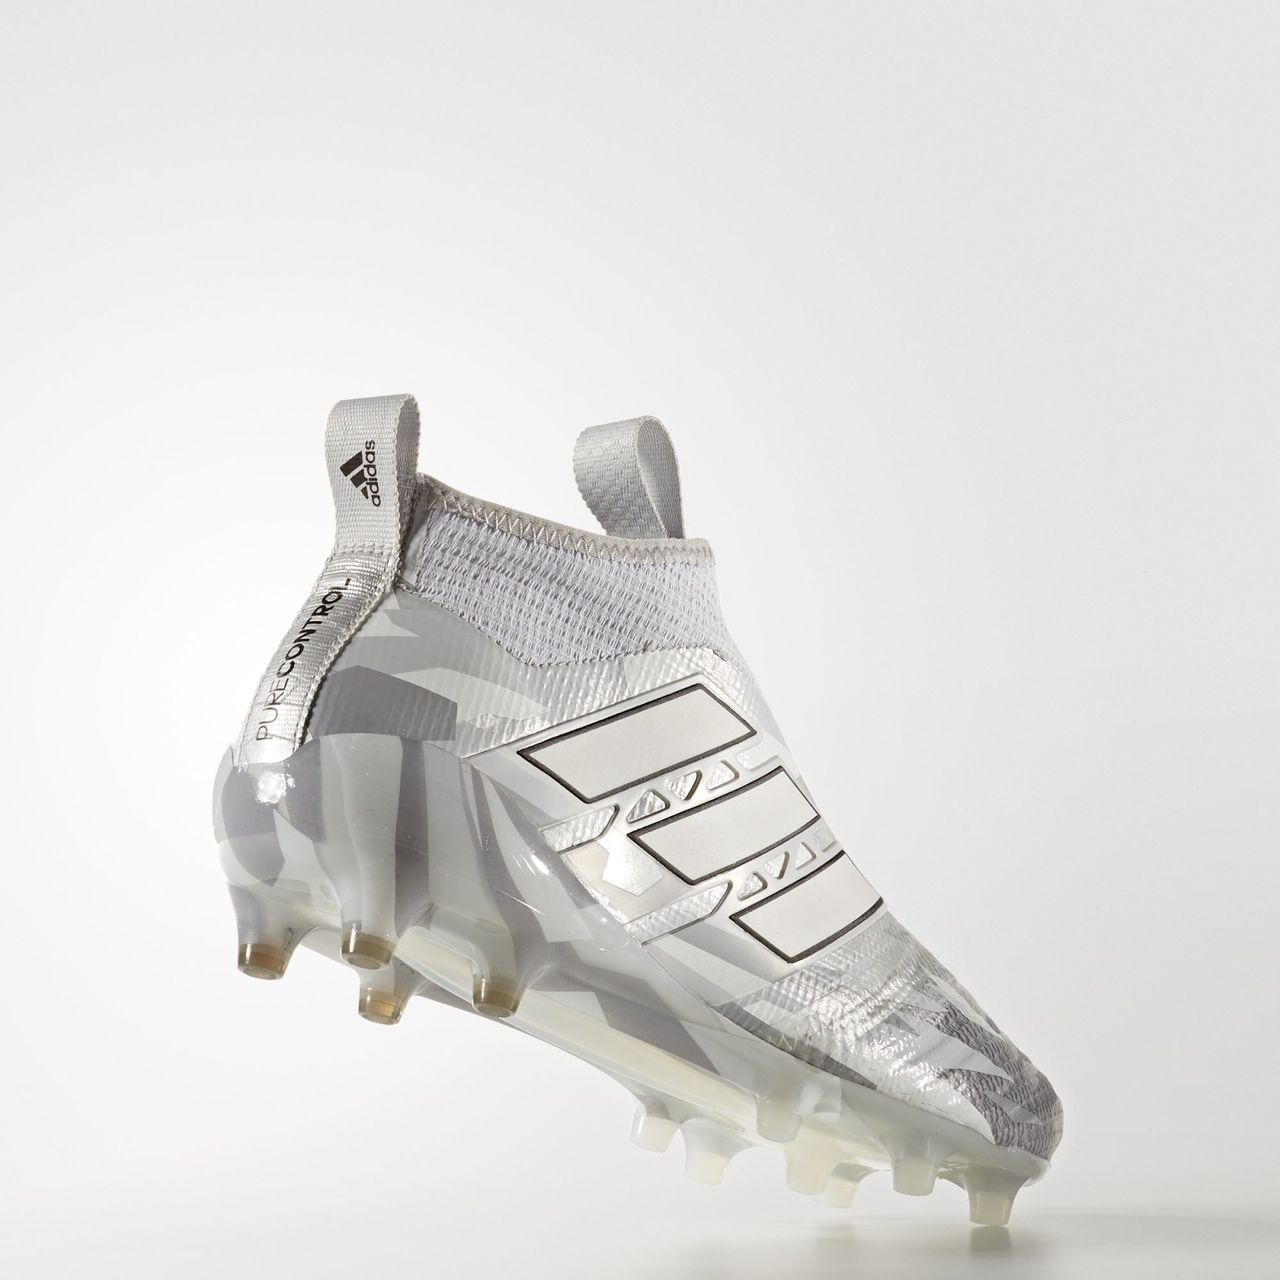 cheap for discount b5ab1 b21cf ... Click to enlarge image  adidas ace 17 purecontrol firm ground boots camouflage clear grey footwear white core black e.jpg  ...